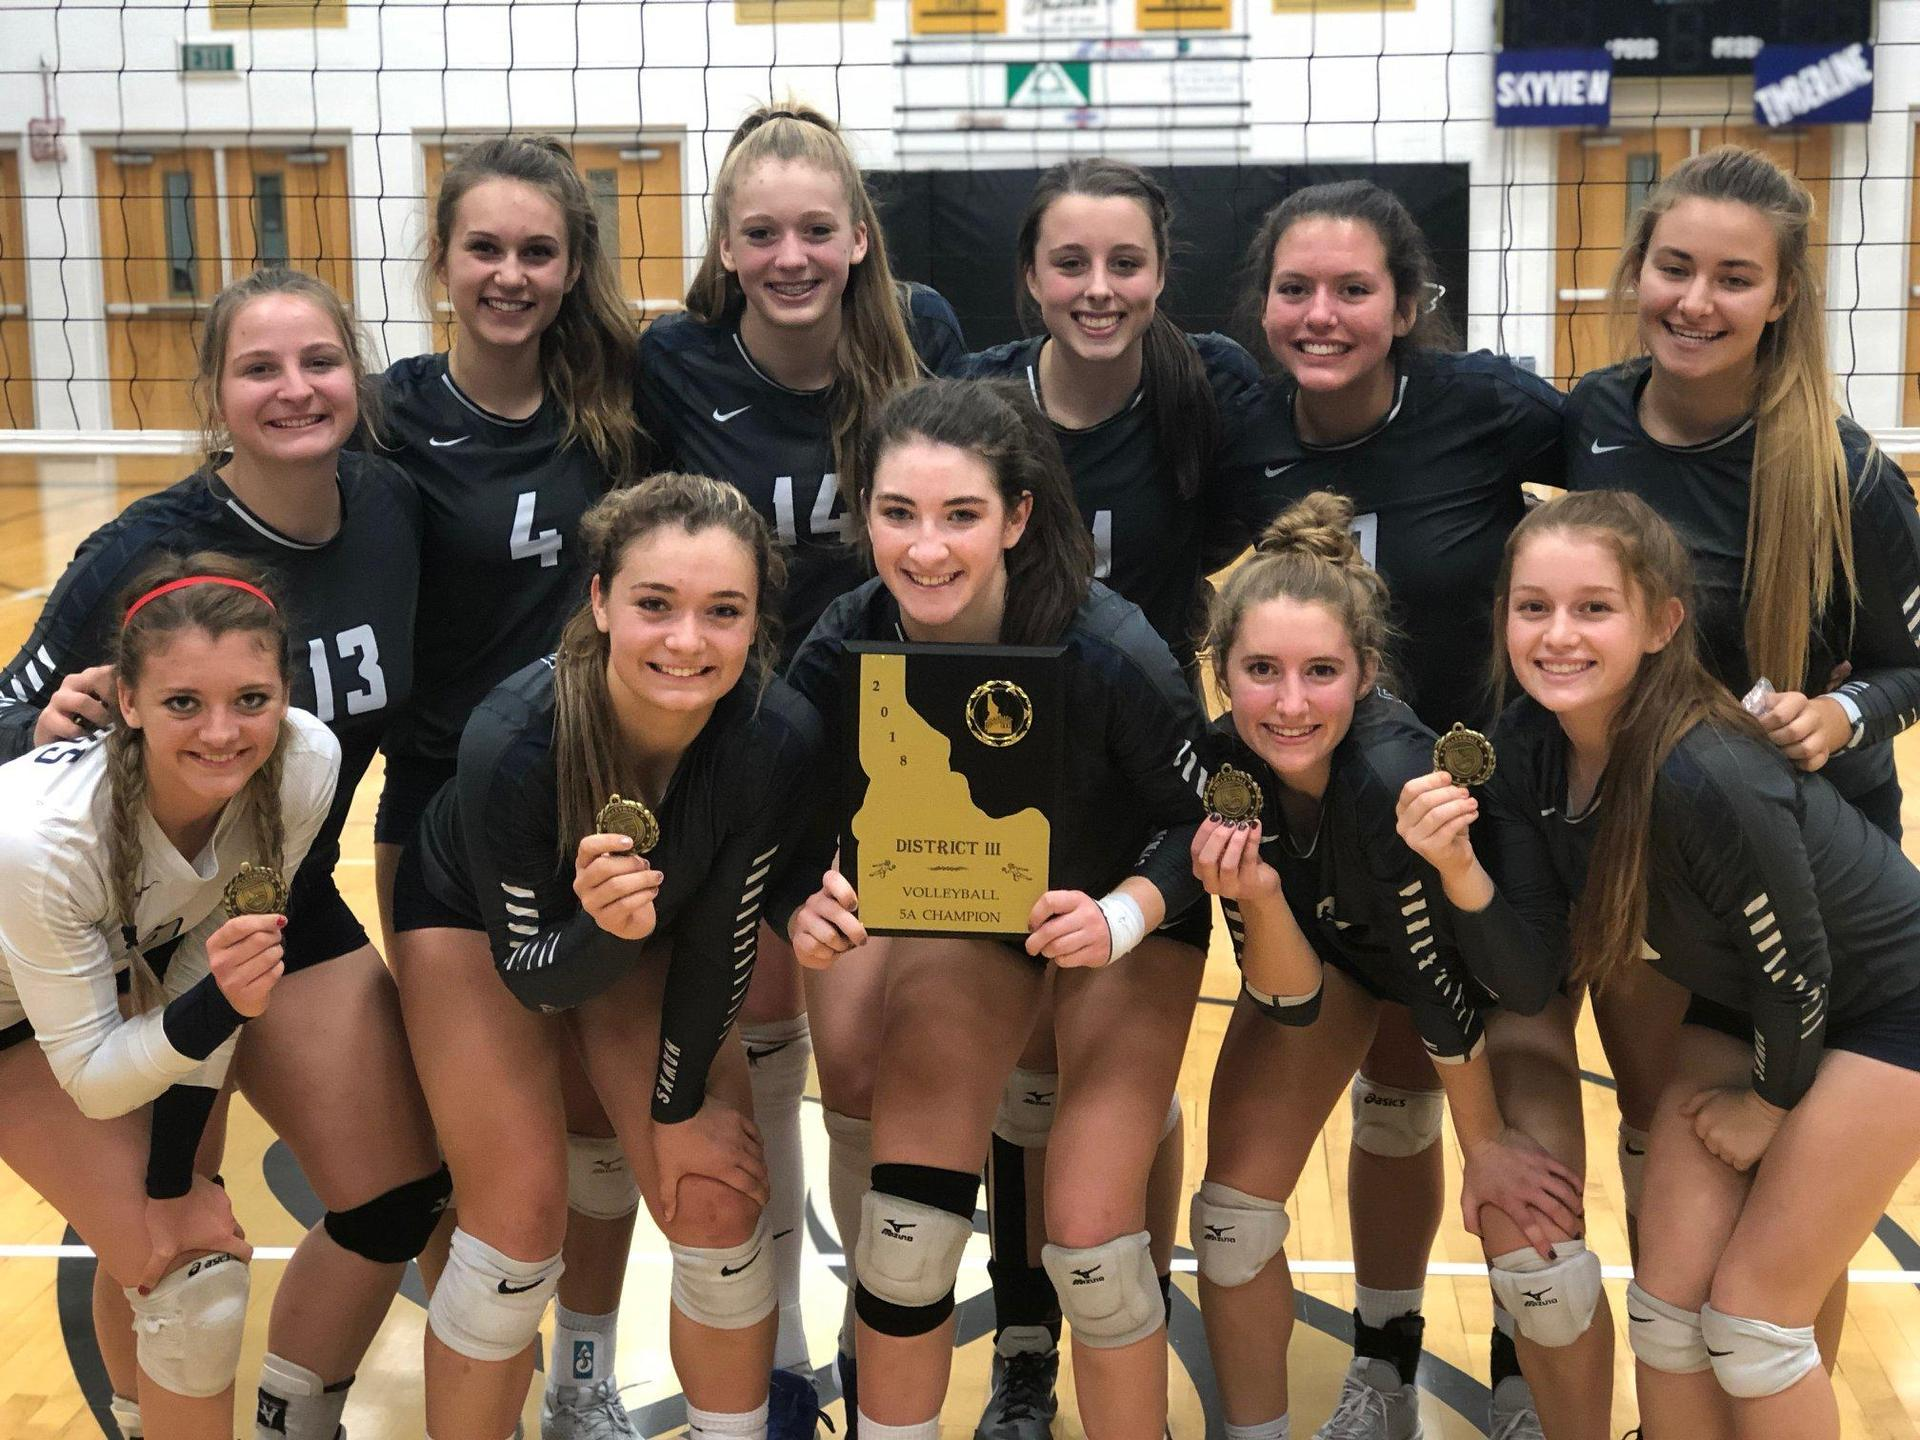 Skyview volleyball team poses with district plaque.